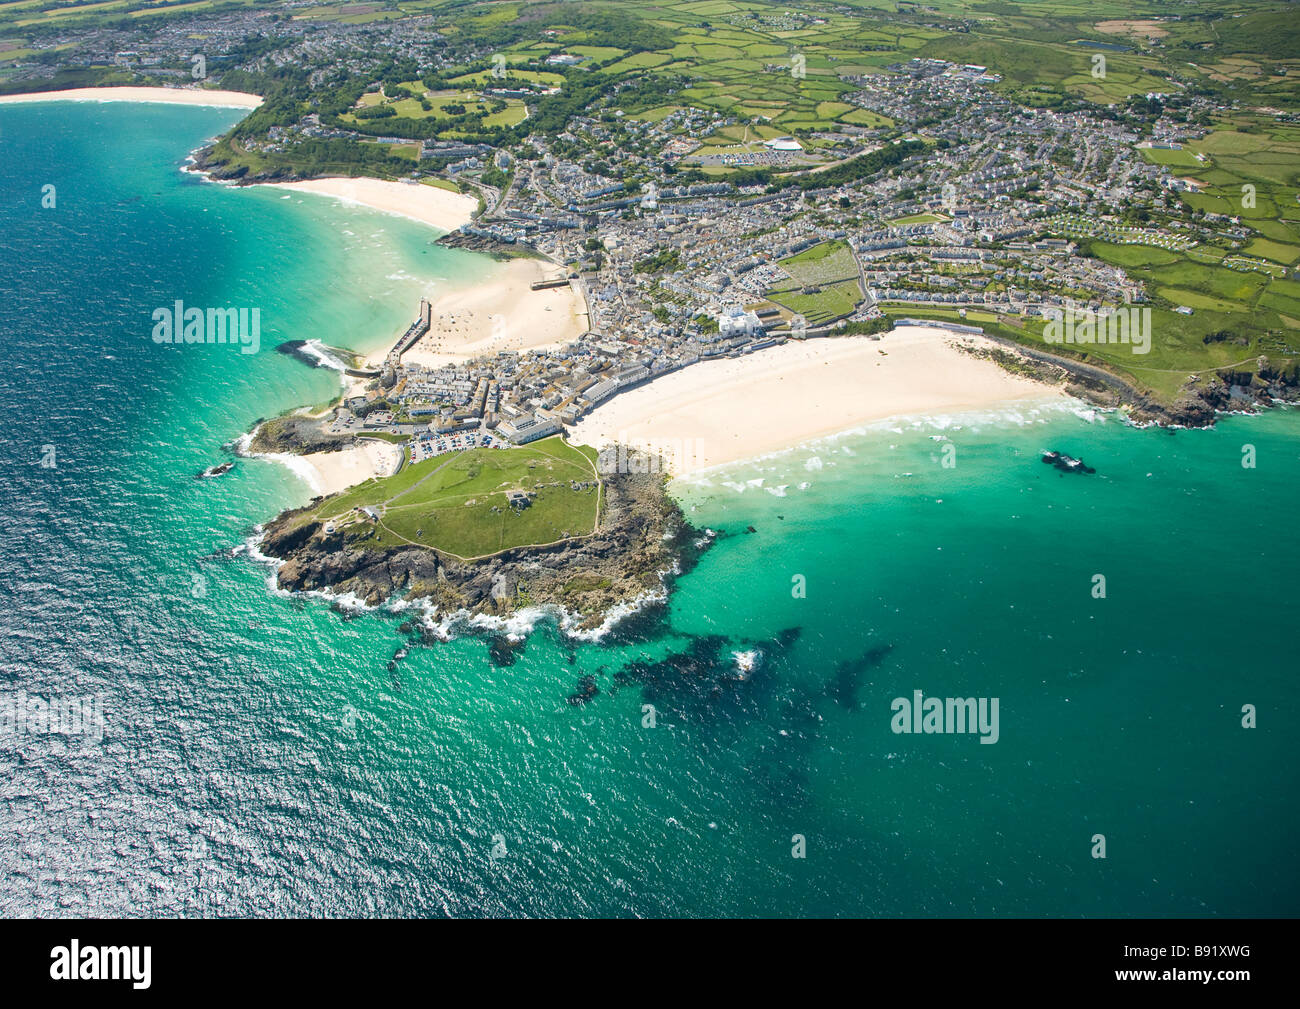 St ives cornwall stock photos st ives cornwall stock for The ives